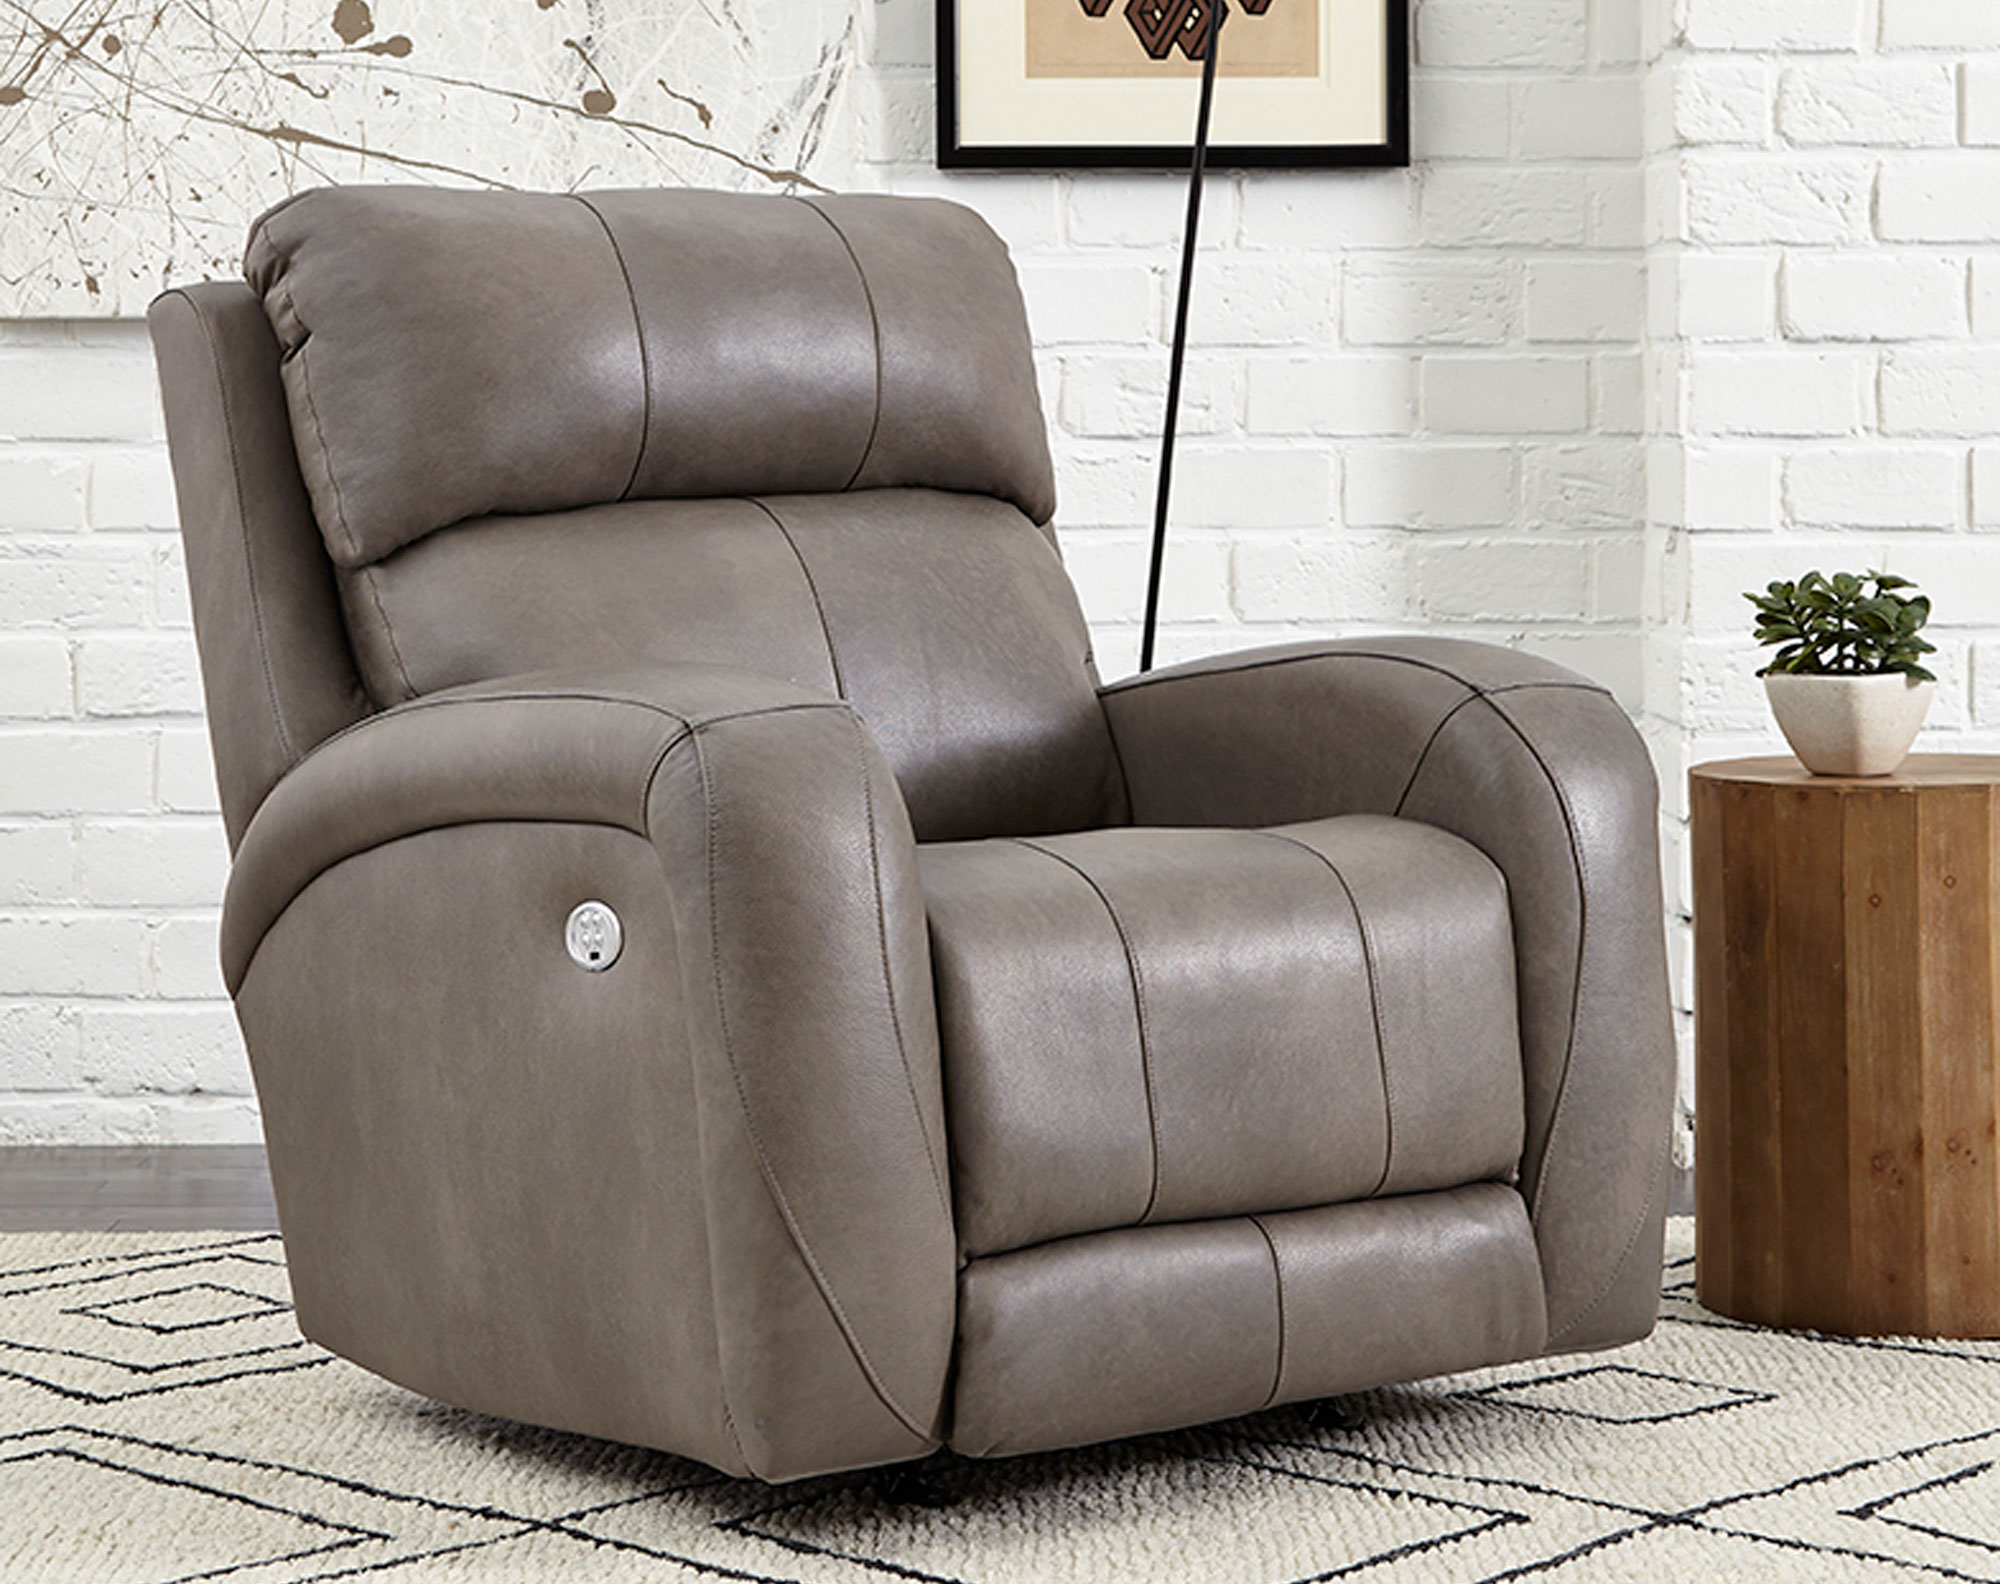 Prime Dawson Rocker Recliner 140 Fabrics And Sofas And Sectionals Dailytribune Chair Design For Home Dailytribuneorg